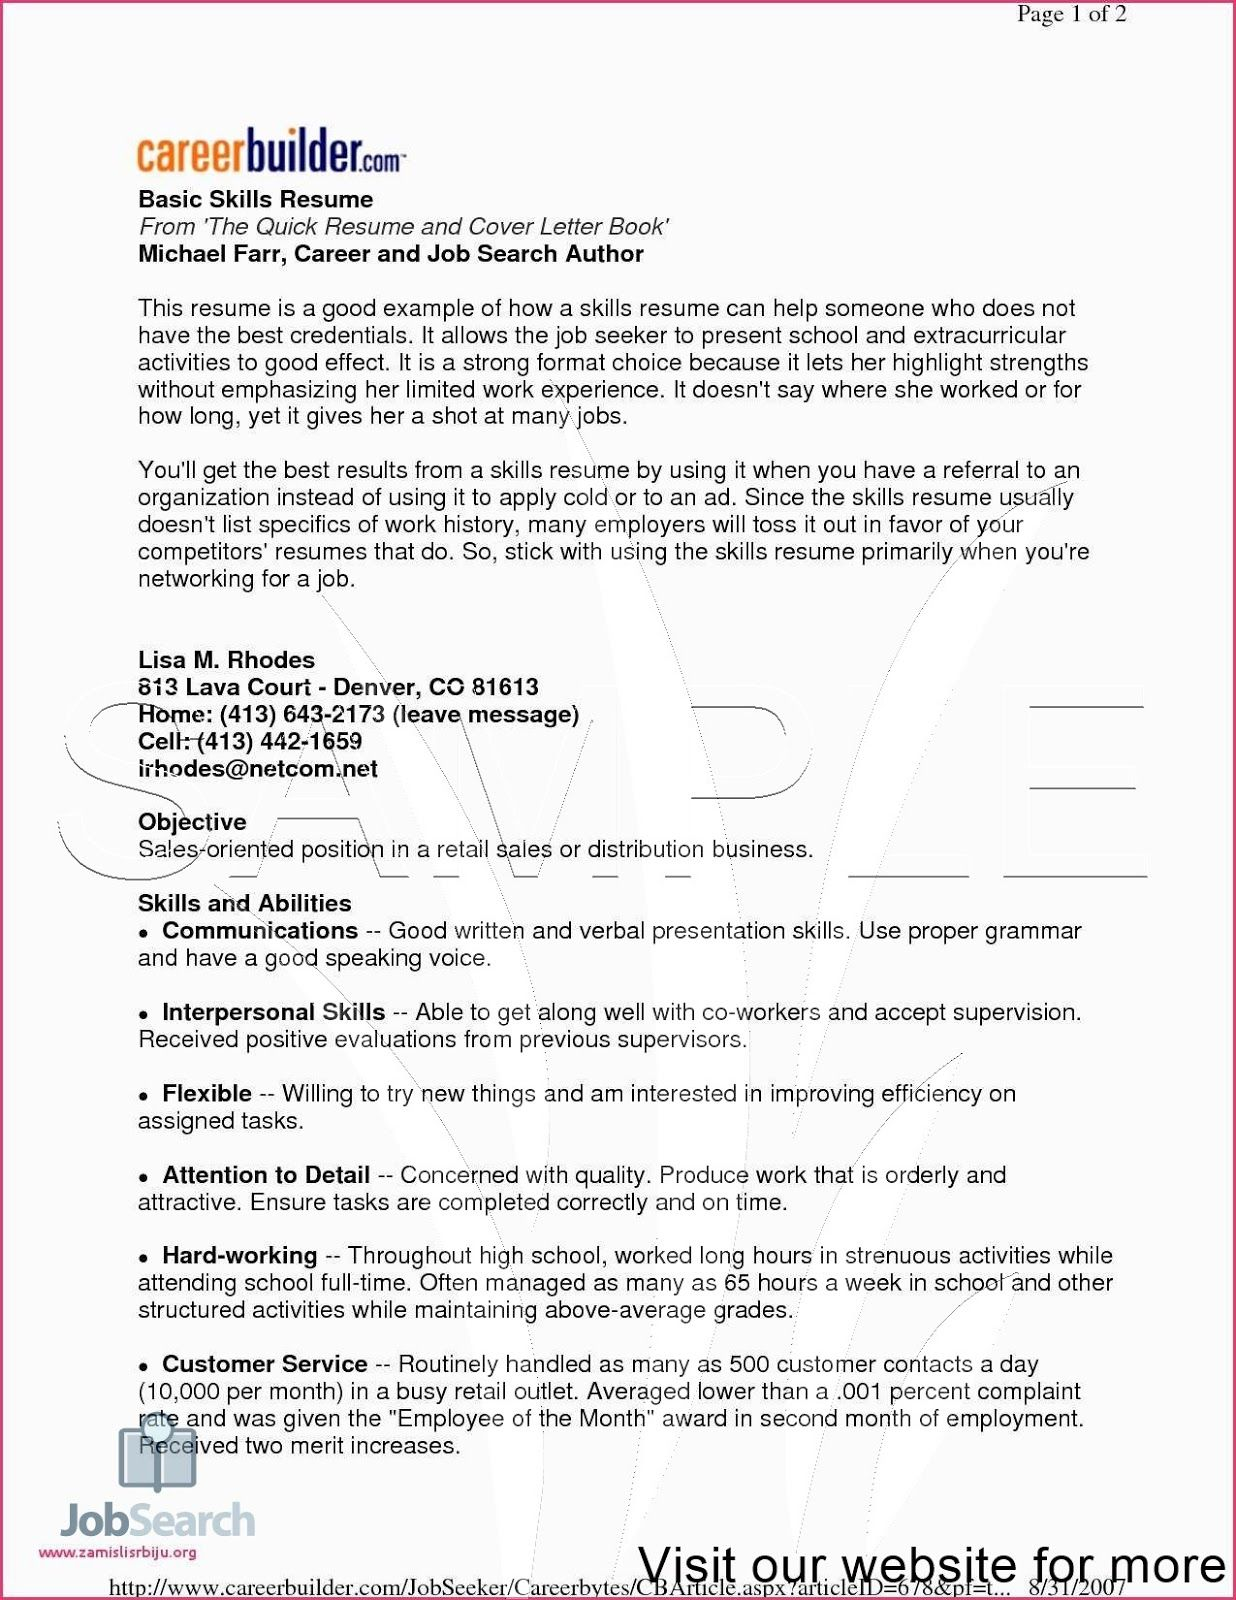 resume template free downloadable word, resume template